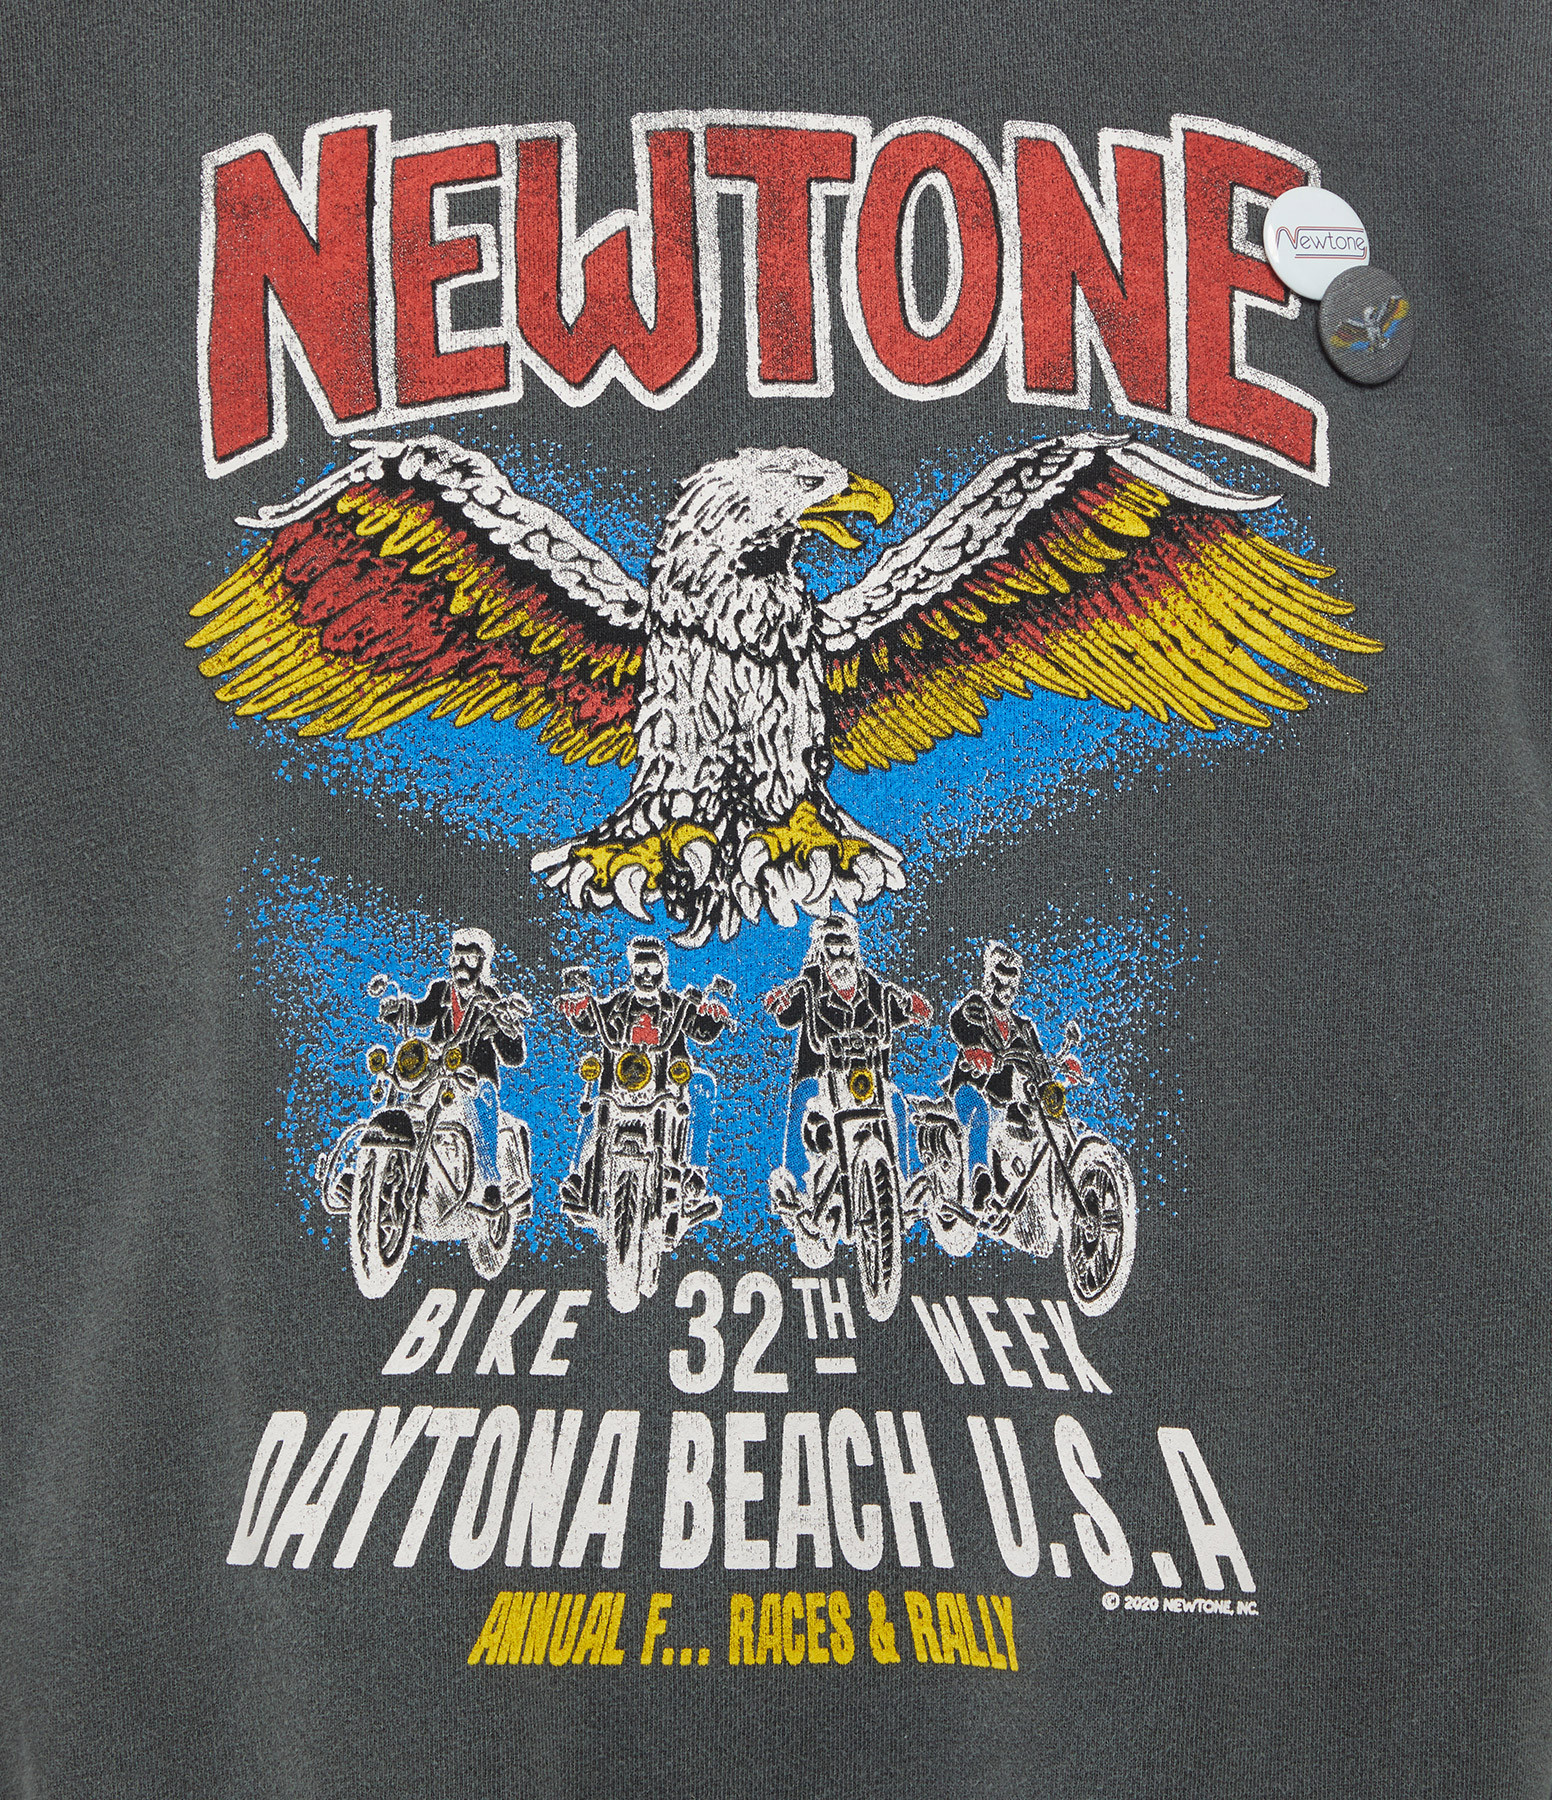 NEWTONE - Sweatshirt Roller Convention Coton Pepper